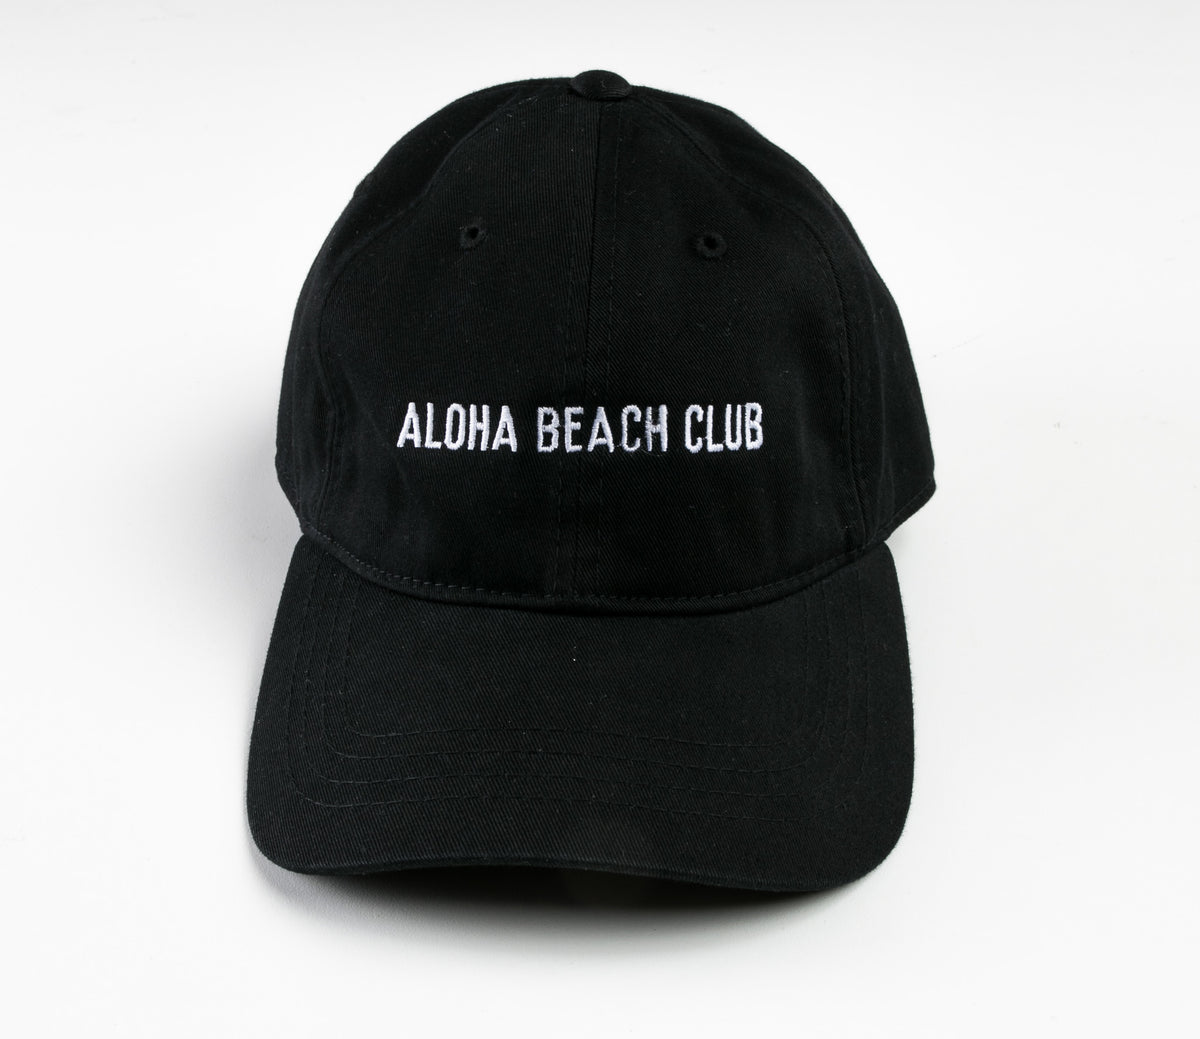 Aloha Beach Club - ABC Polo Cap Black 72546252c345